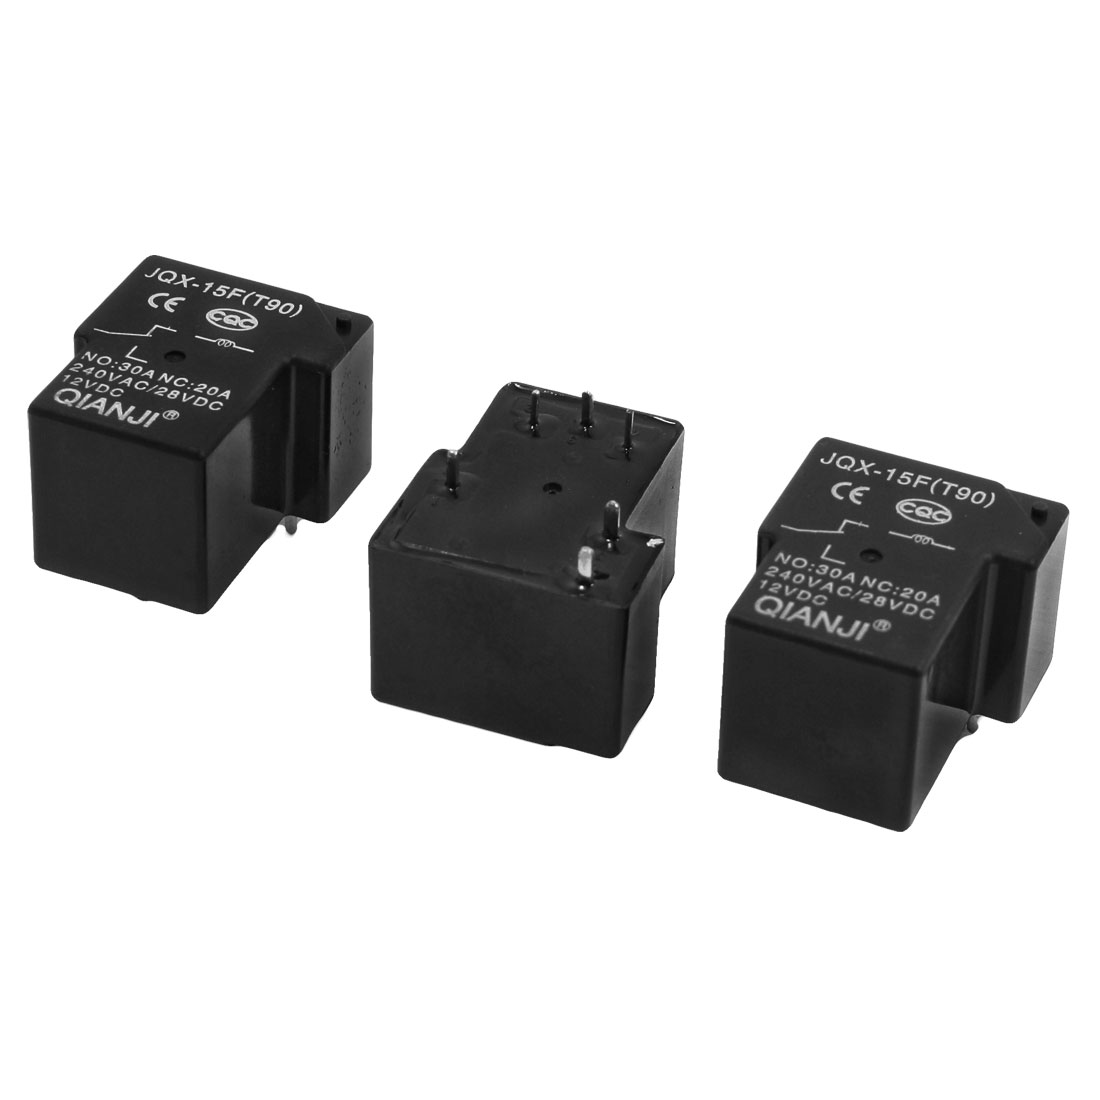 3 x JQX-15F(T90) 12VDC Coil Voltage 6Pin PCB Connector Power Relay